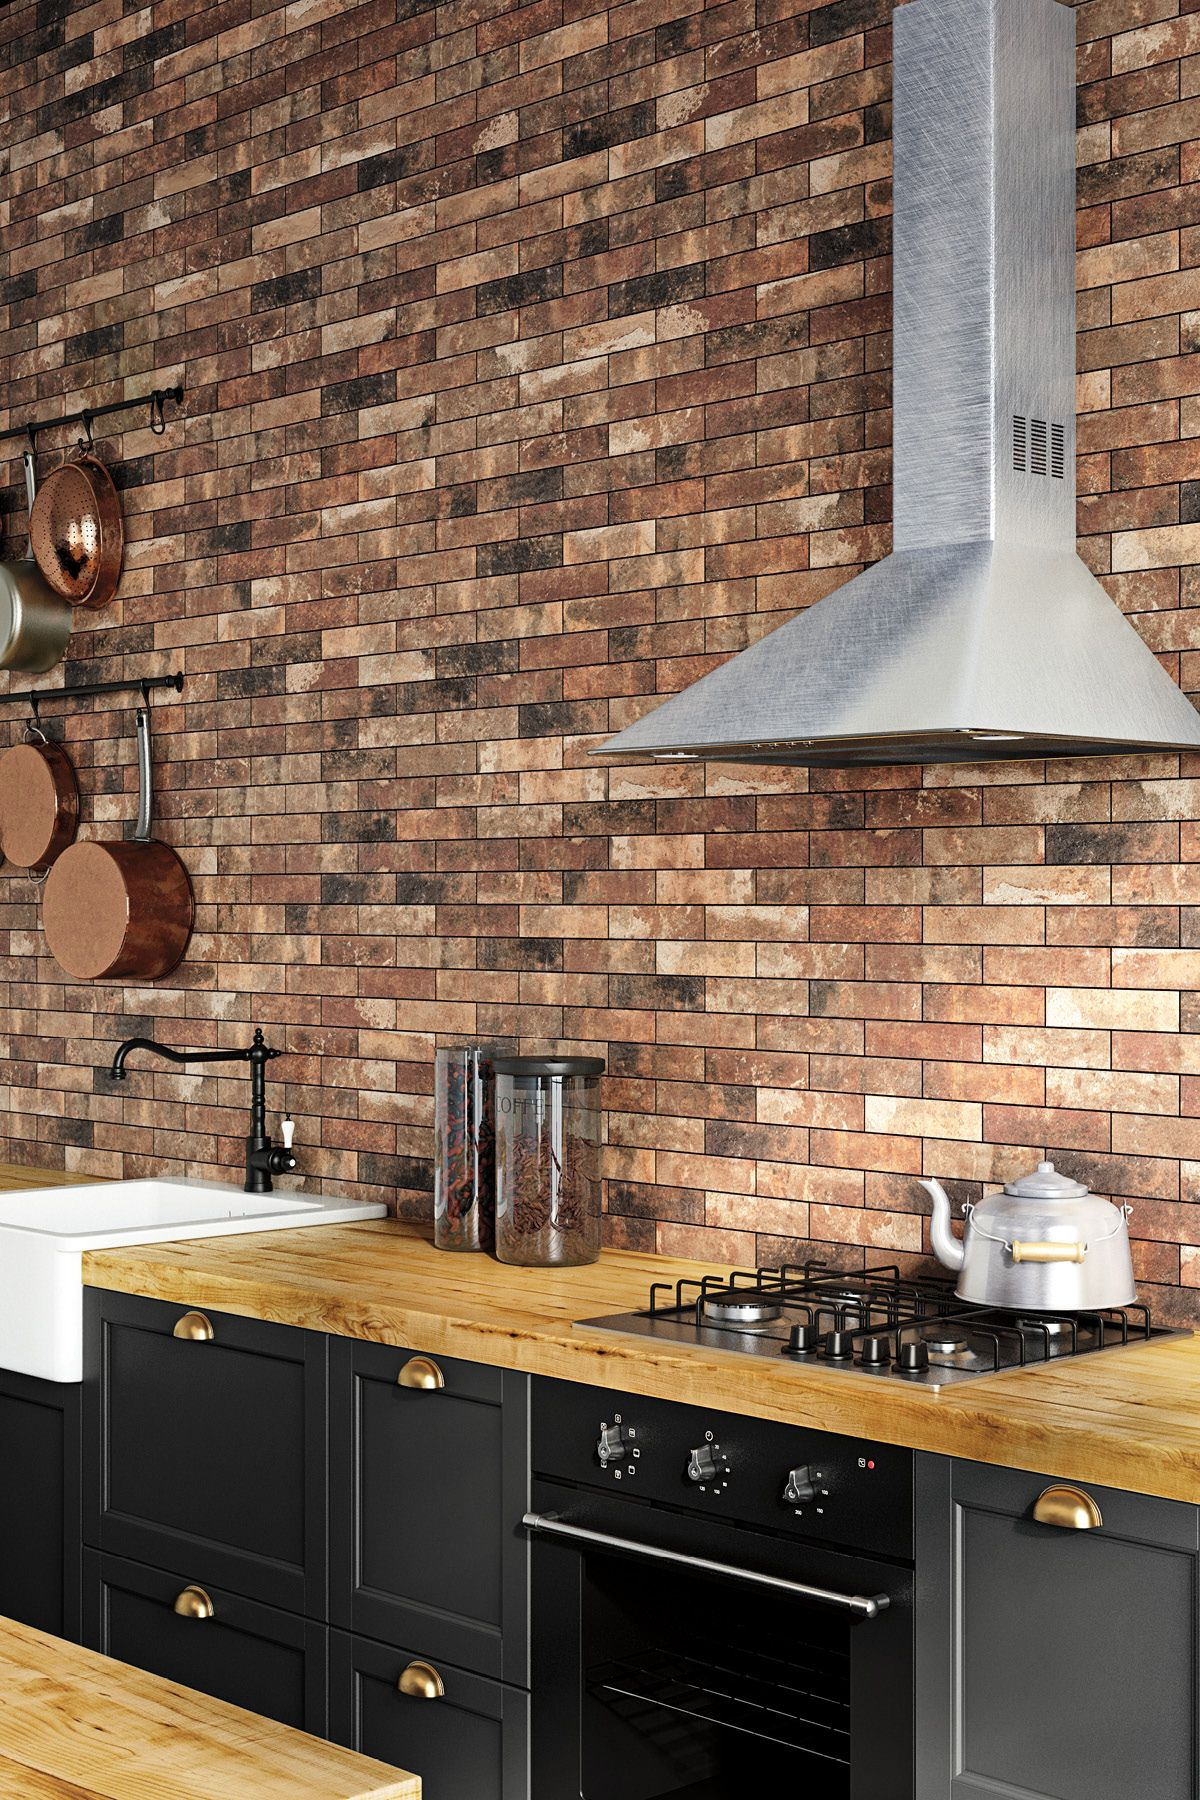 Marazzi Urban District BRX. Product lead time and